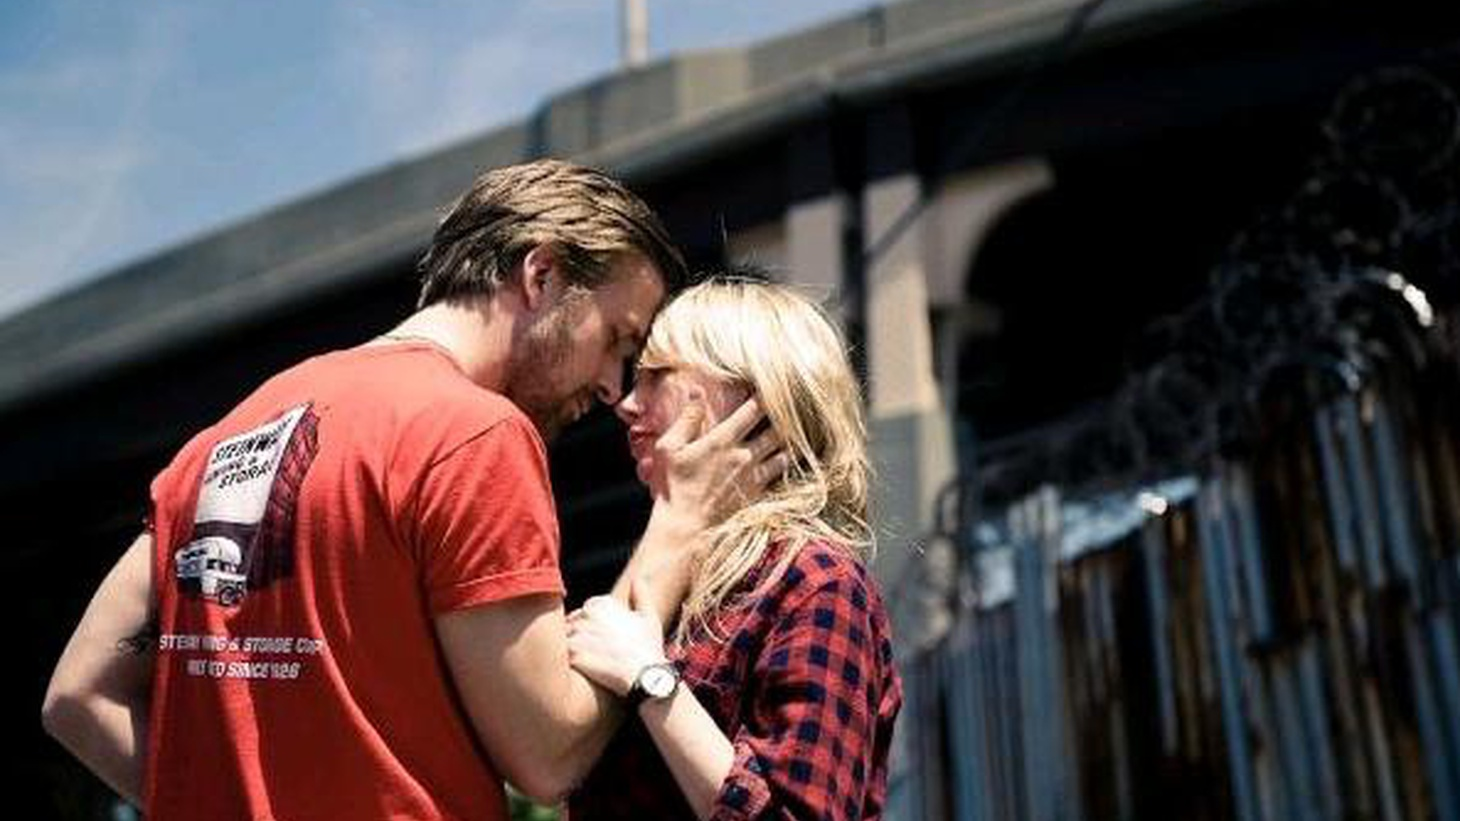 Blue Valentine is the auspicious directorial debut of Derek Cianfrance, and it can be crushing in its portrayal of how two people who truly do love each other come to lacerate and eventually devastate each other. The heartbreaking brilliance of this film lies in its contradictions...